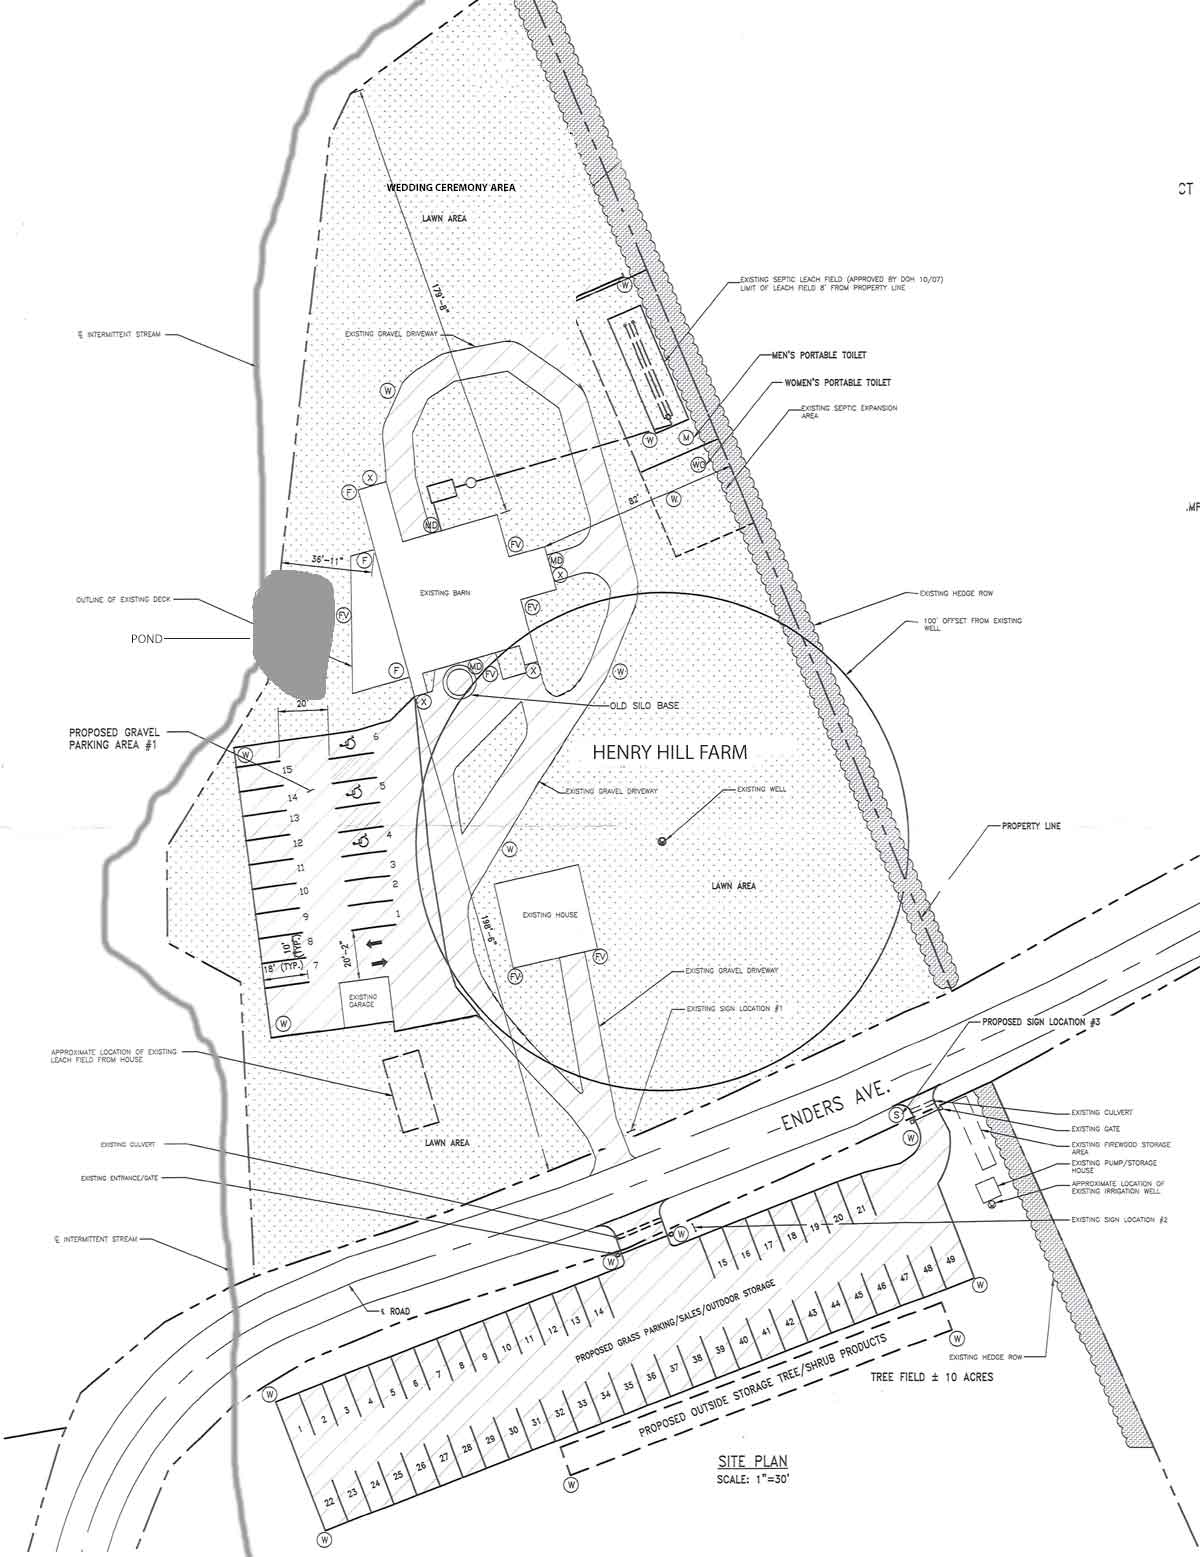 Layout of Henry Hill Farm